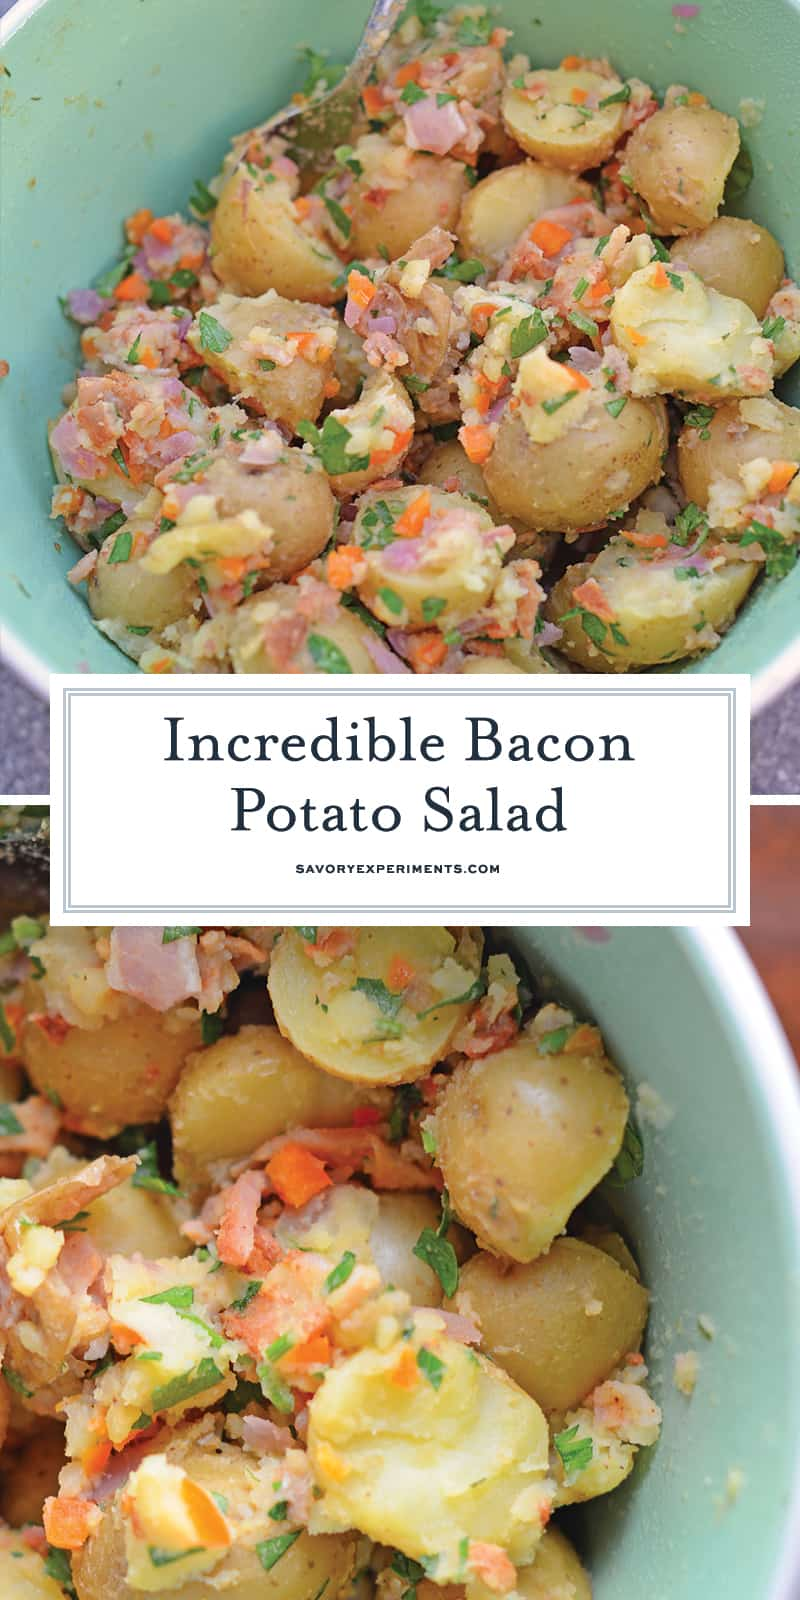 Bacon Potato Salad can be served hot or cold and uses veggies and BACON! This is a NO MAYO potato salad! The perfect make ahead side dish. #potatosalad #nomayopotatosalad www.savoryexperiments.com